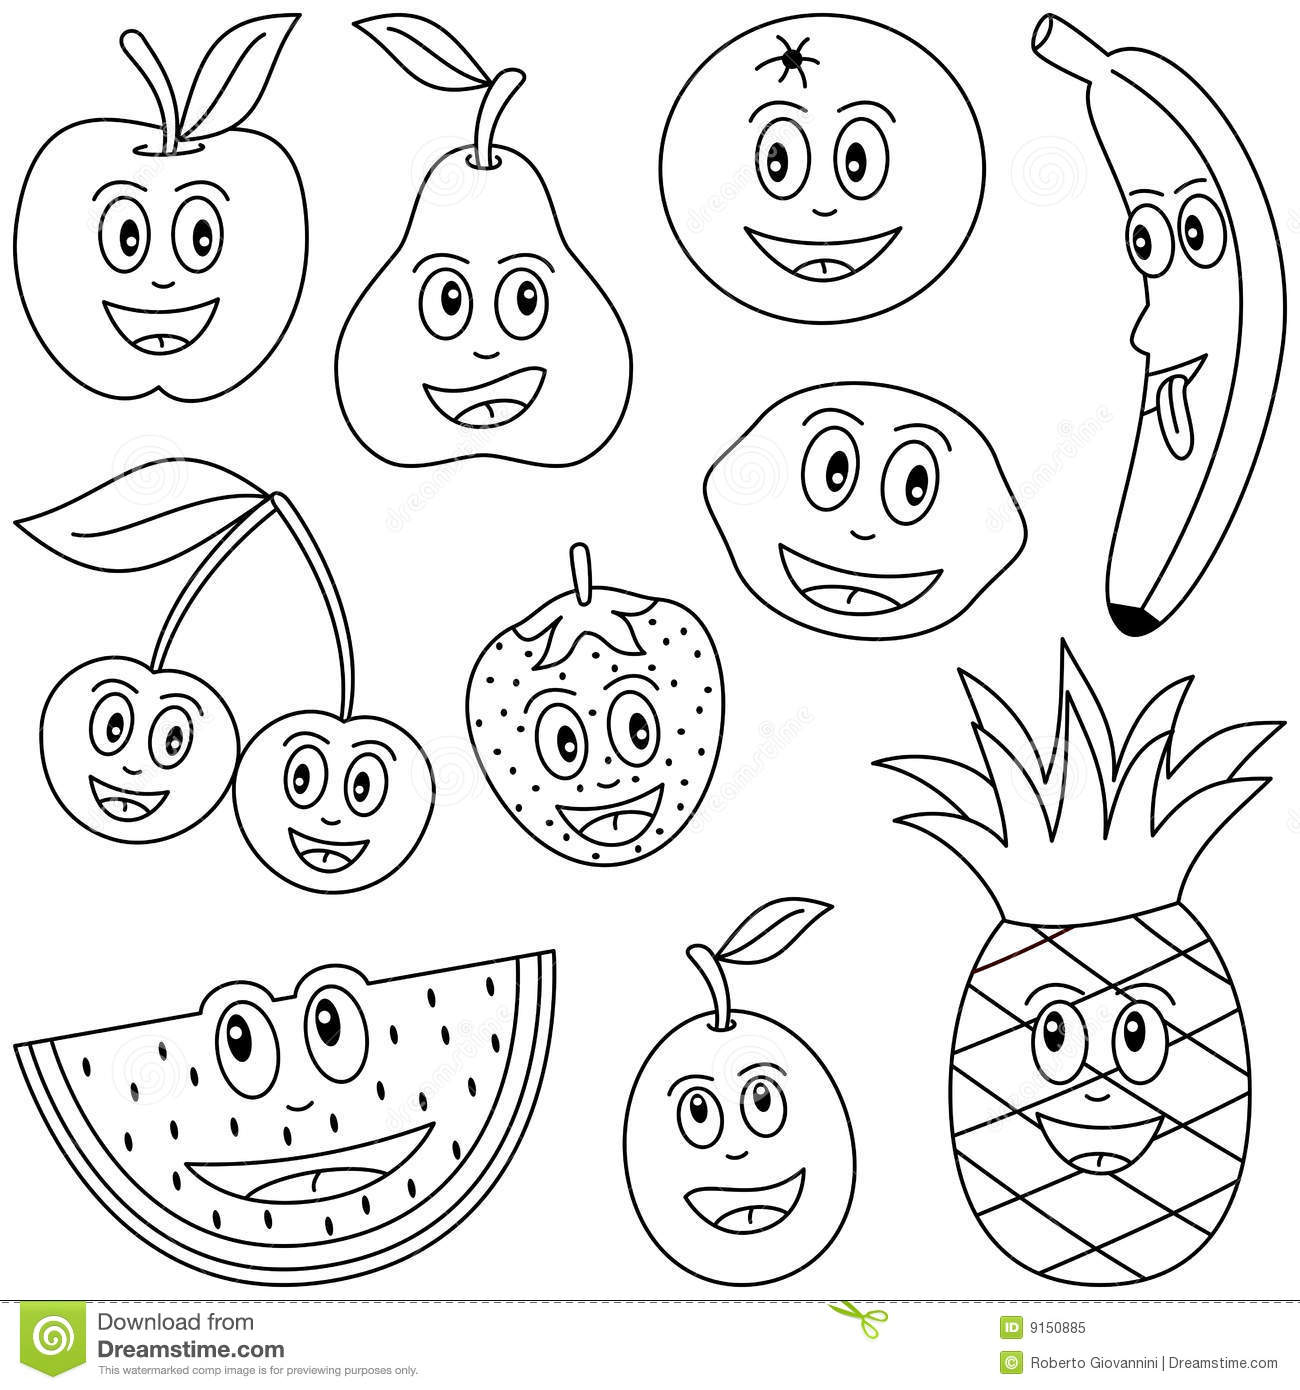 fruit coloring for kids delicious fruit coloring pages to print stpetefestorg coloring fruit kids for